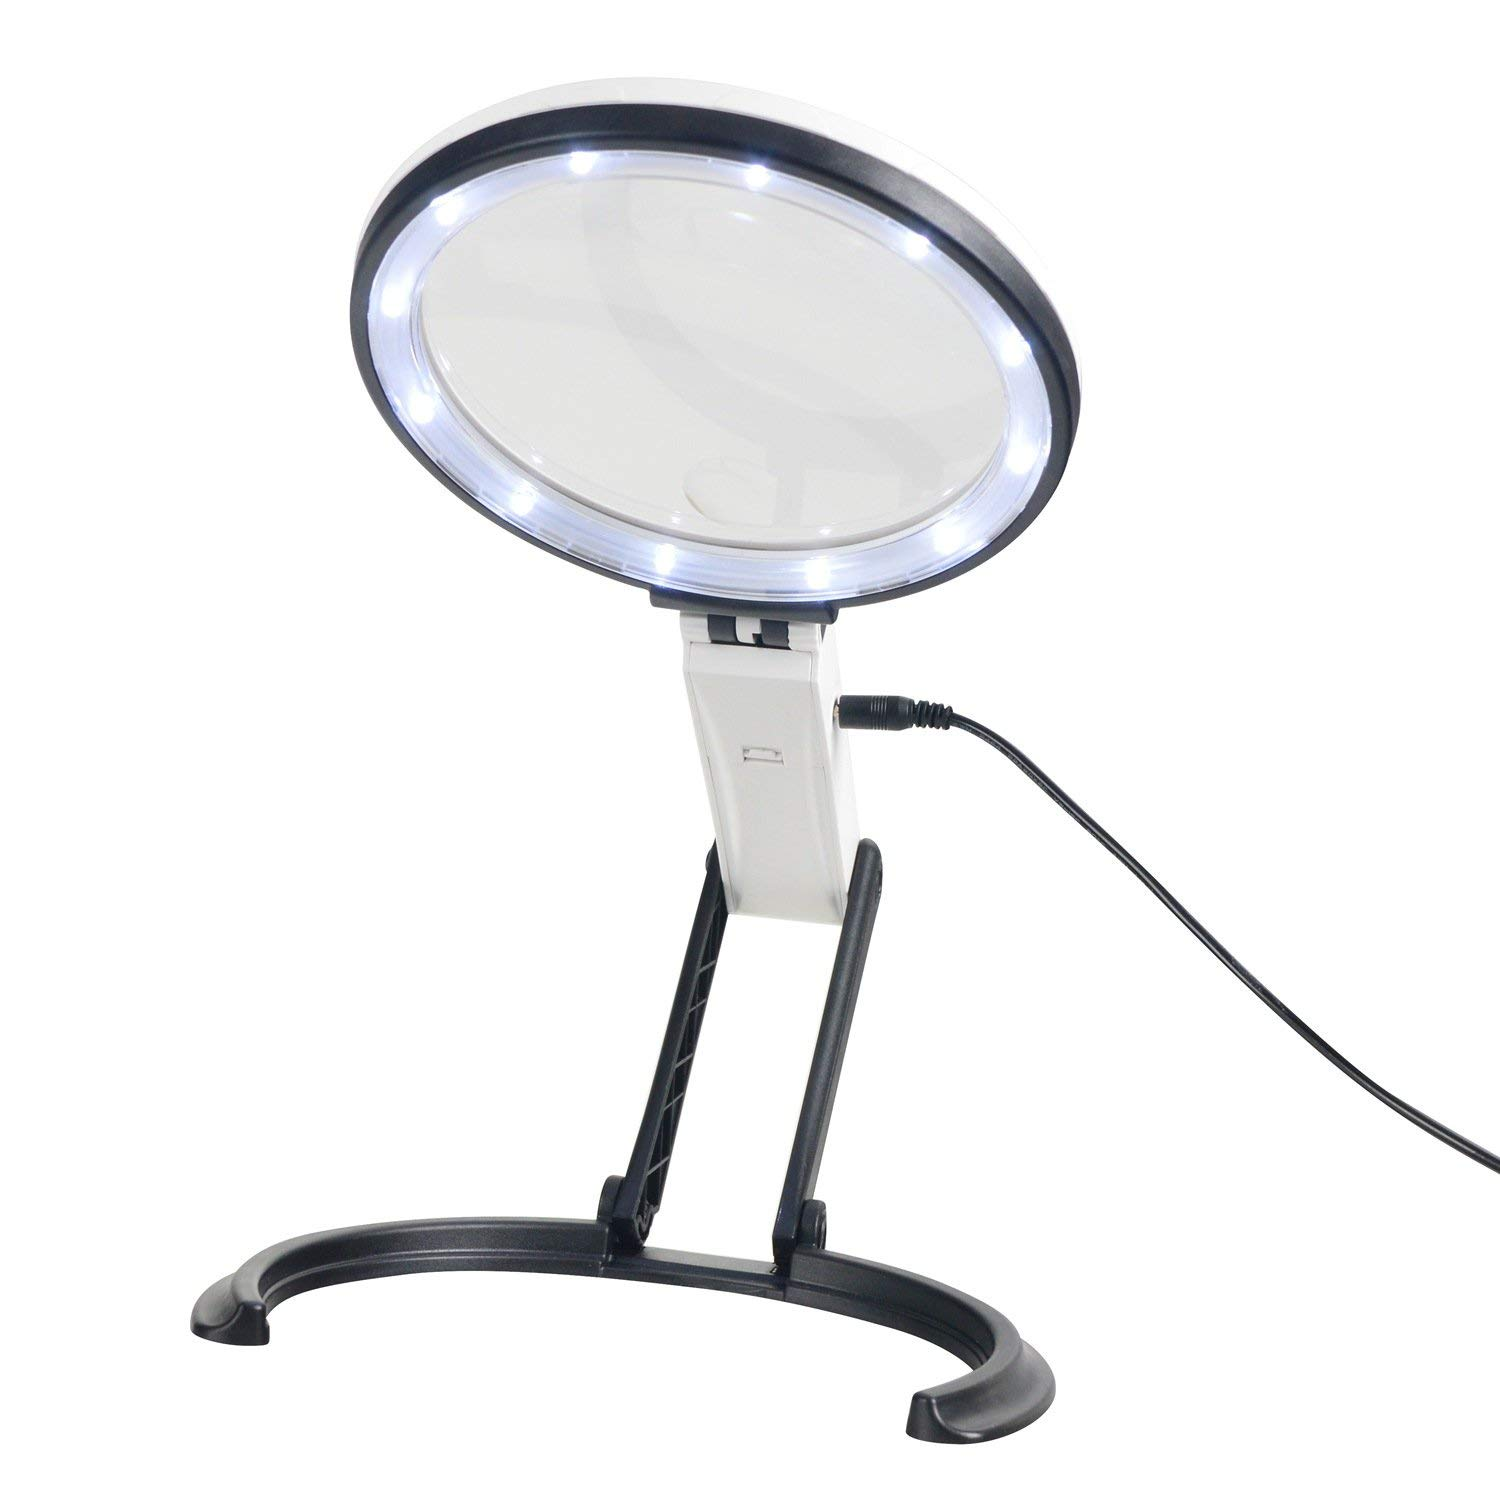 YOCTOSUN 2-in-1 Magnifying Glass with Light, 2X 5X Desktop Magnifying Lamp, Adjustable Handheld Magnifier/Hands Free Magnifying Glass for Reading, Repair, Inspection (USB Lighted)